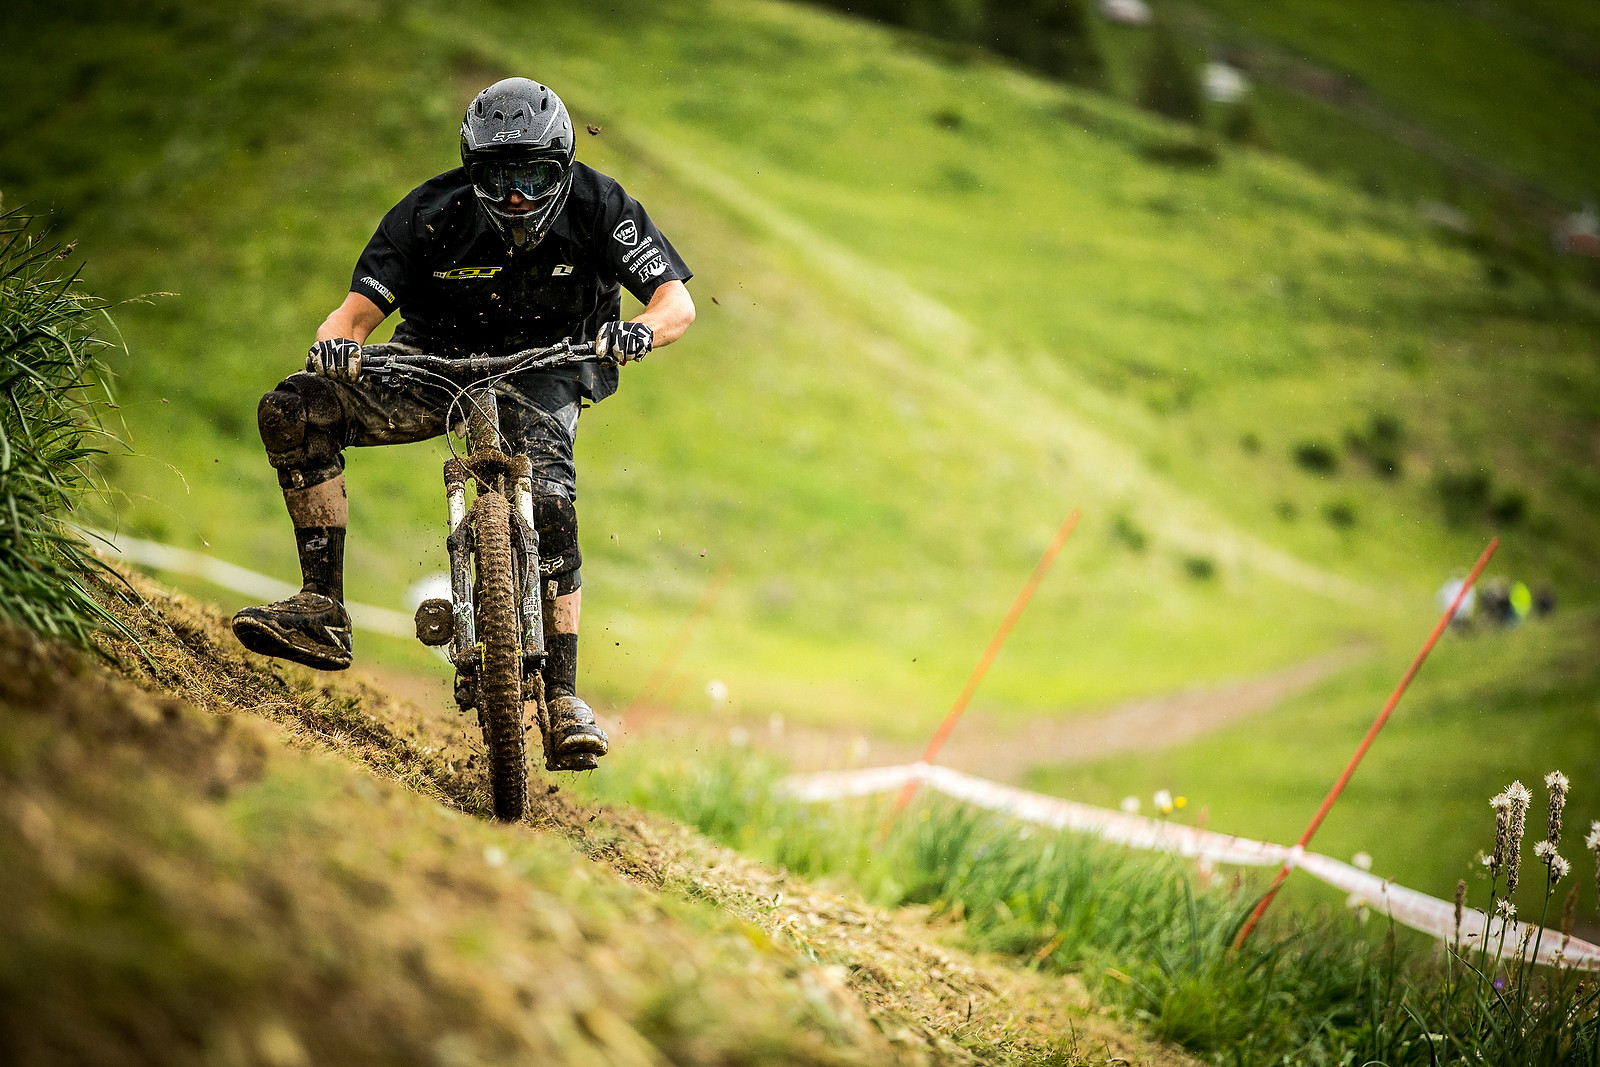 GT's Mark Maurissen Testing Cut Spikes at Crankworx L2A - Crankworx L2A - Air Downhill Photo Action - Mountain Biking Pictures - Vital MTB